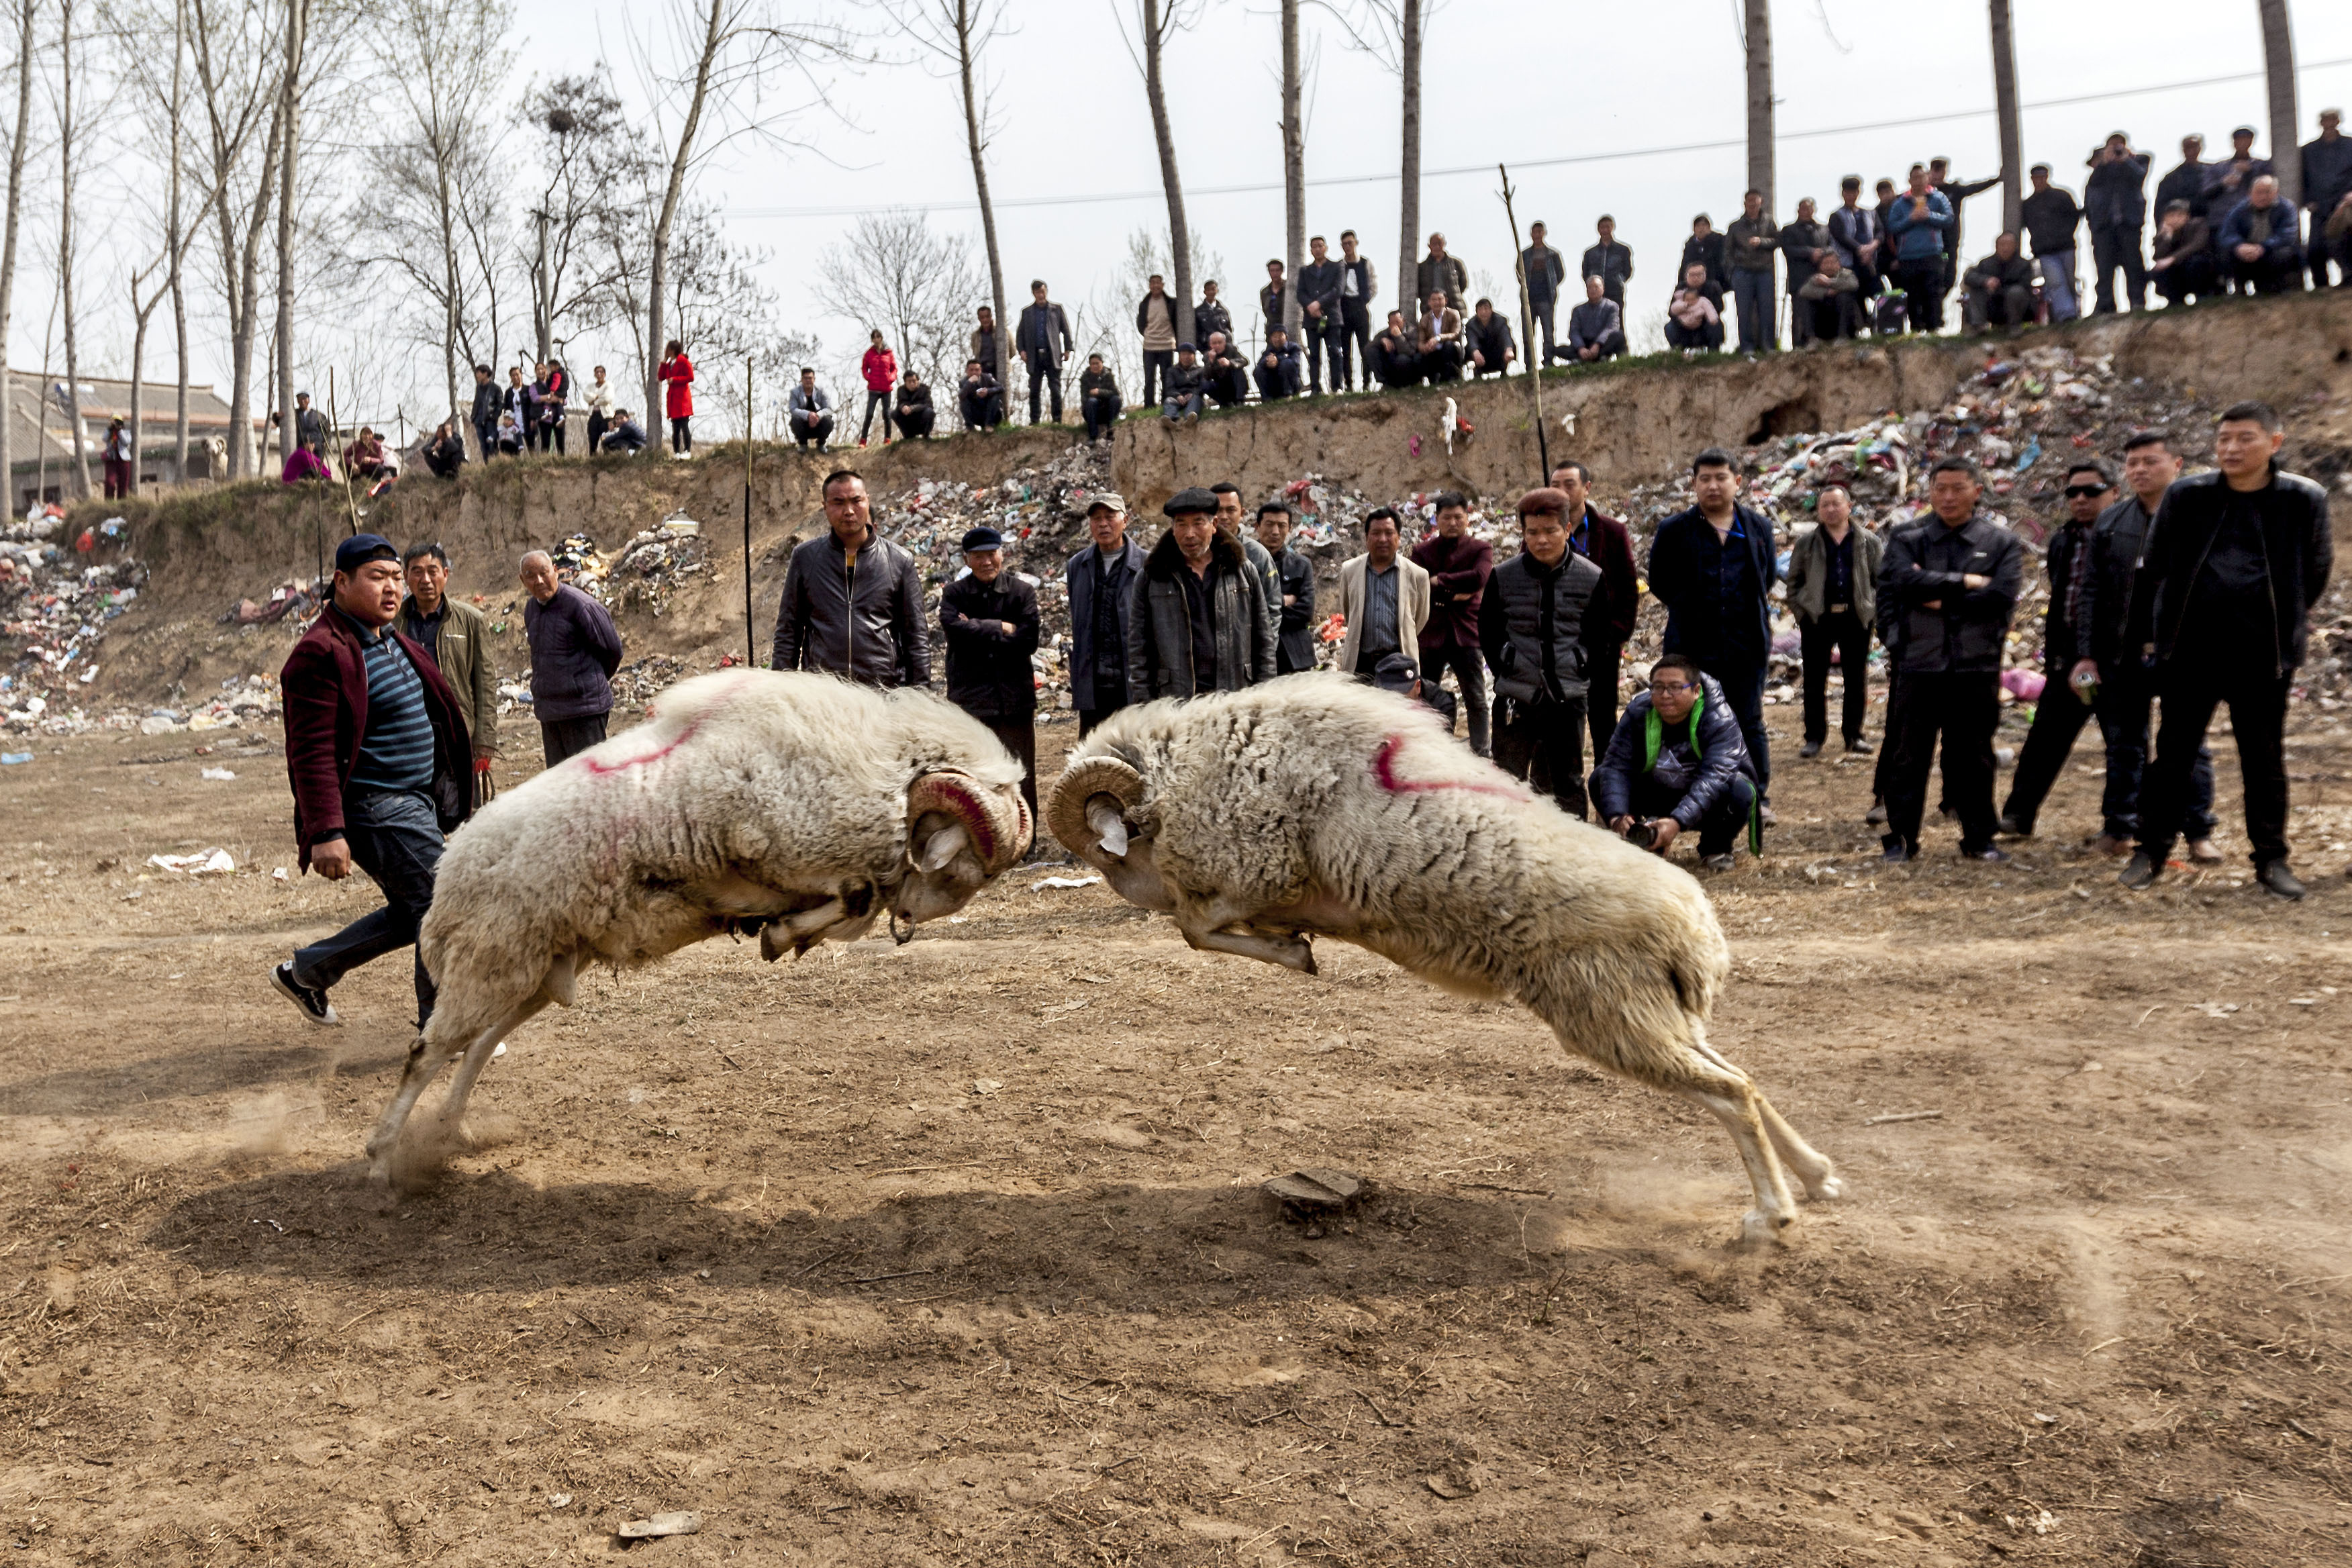 Villagers gather to watch two sheep fighting in a sheep competition during a temple fair at Lihejing Village in Hua County,  China, on March 22, 2016.